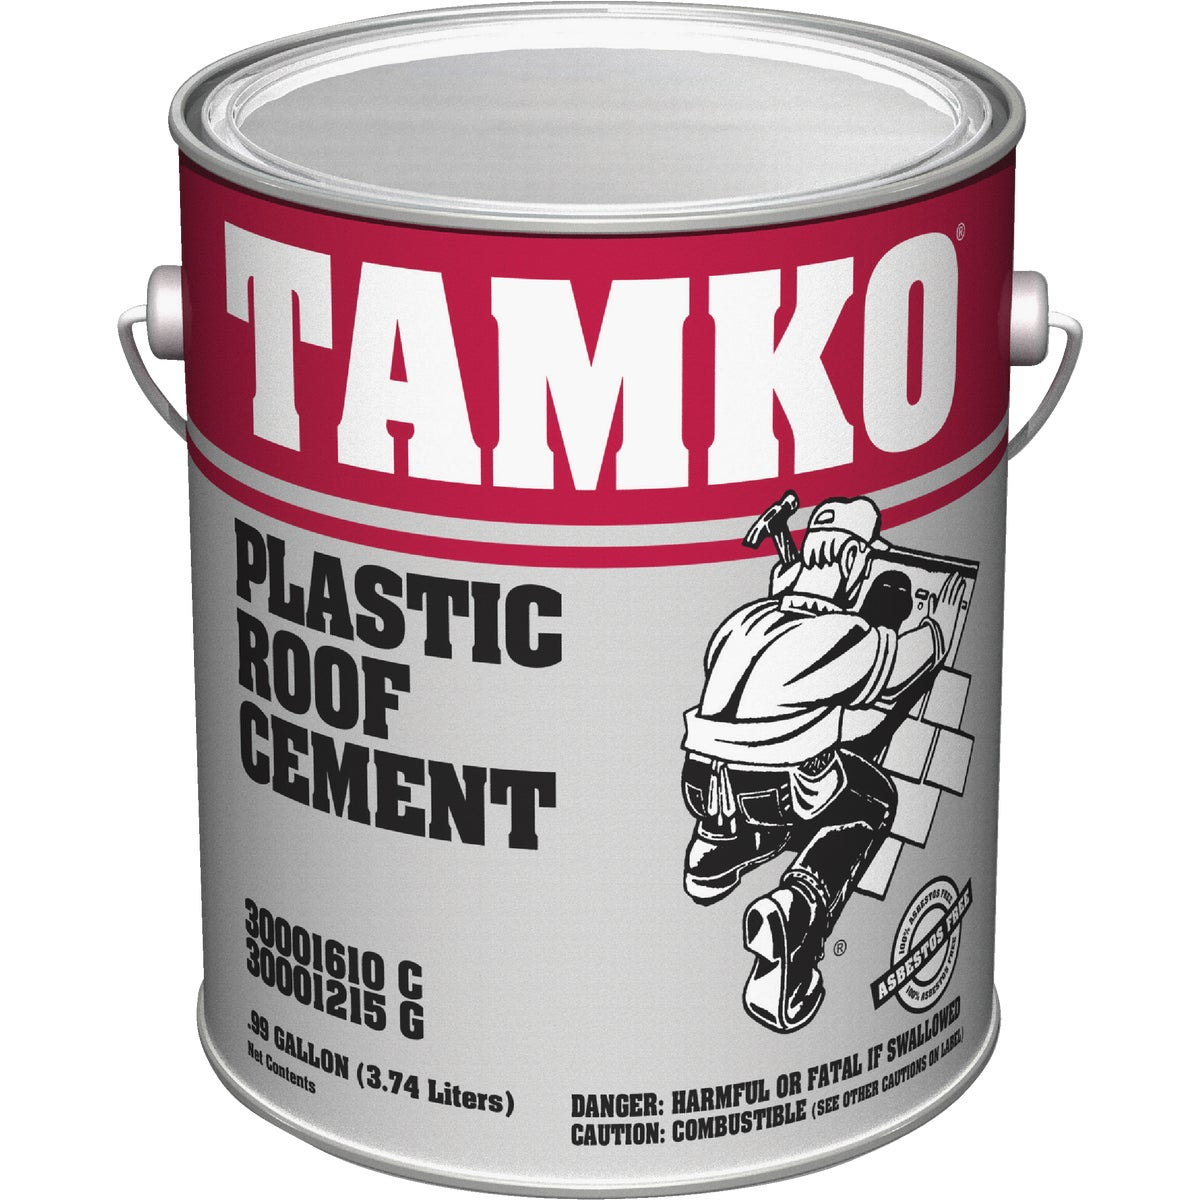 GAL PLASTIC ROOF CEMENT - 30001610 by Tamko Bldg Prod Inc